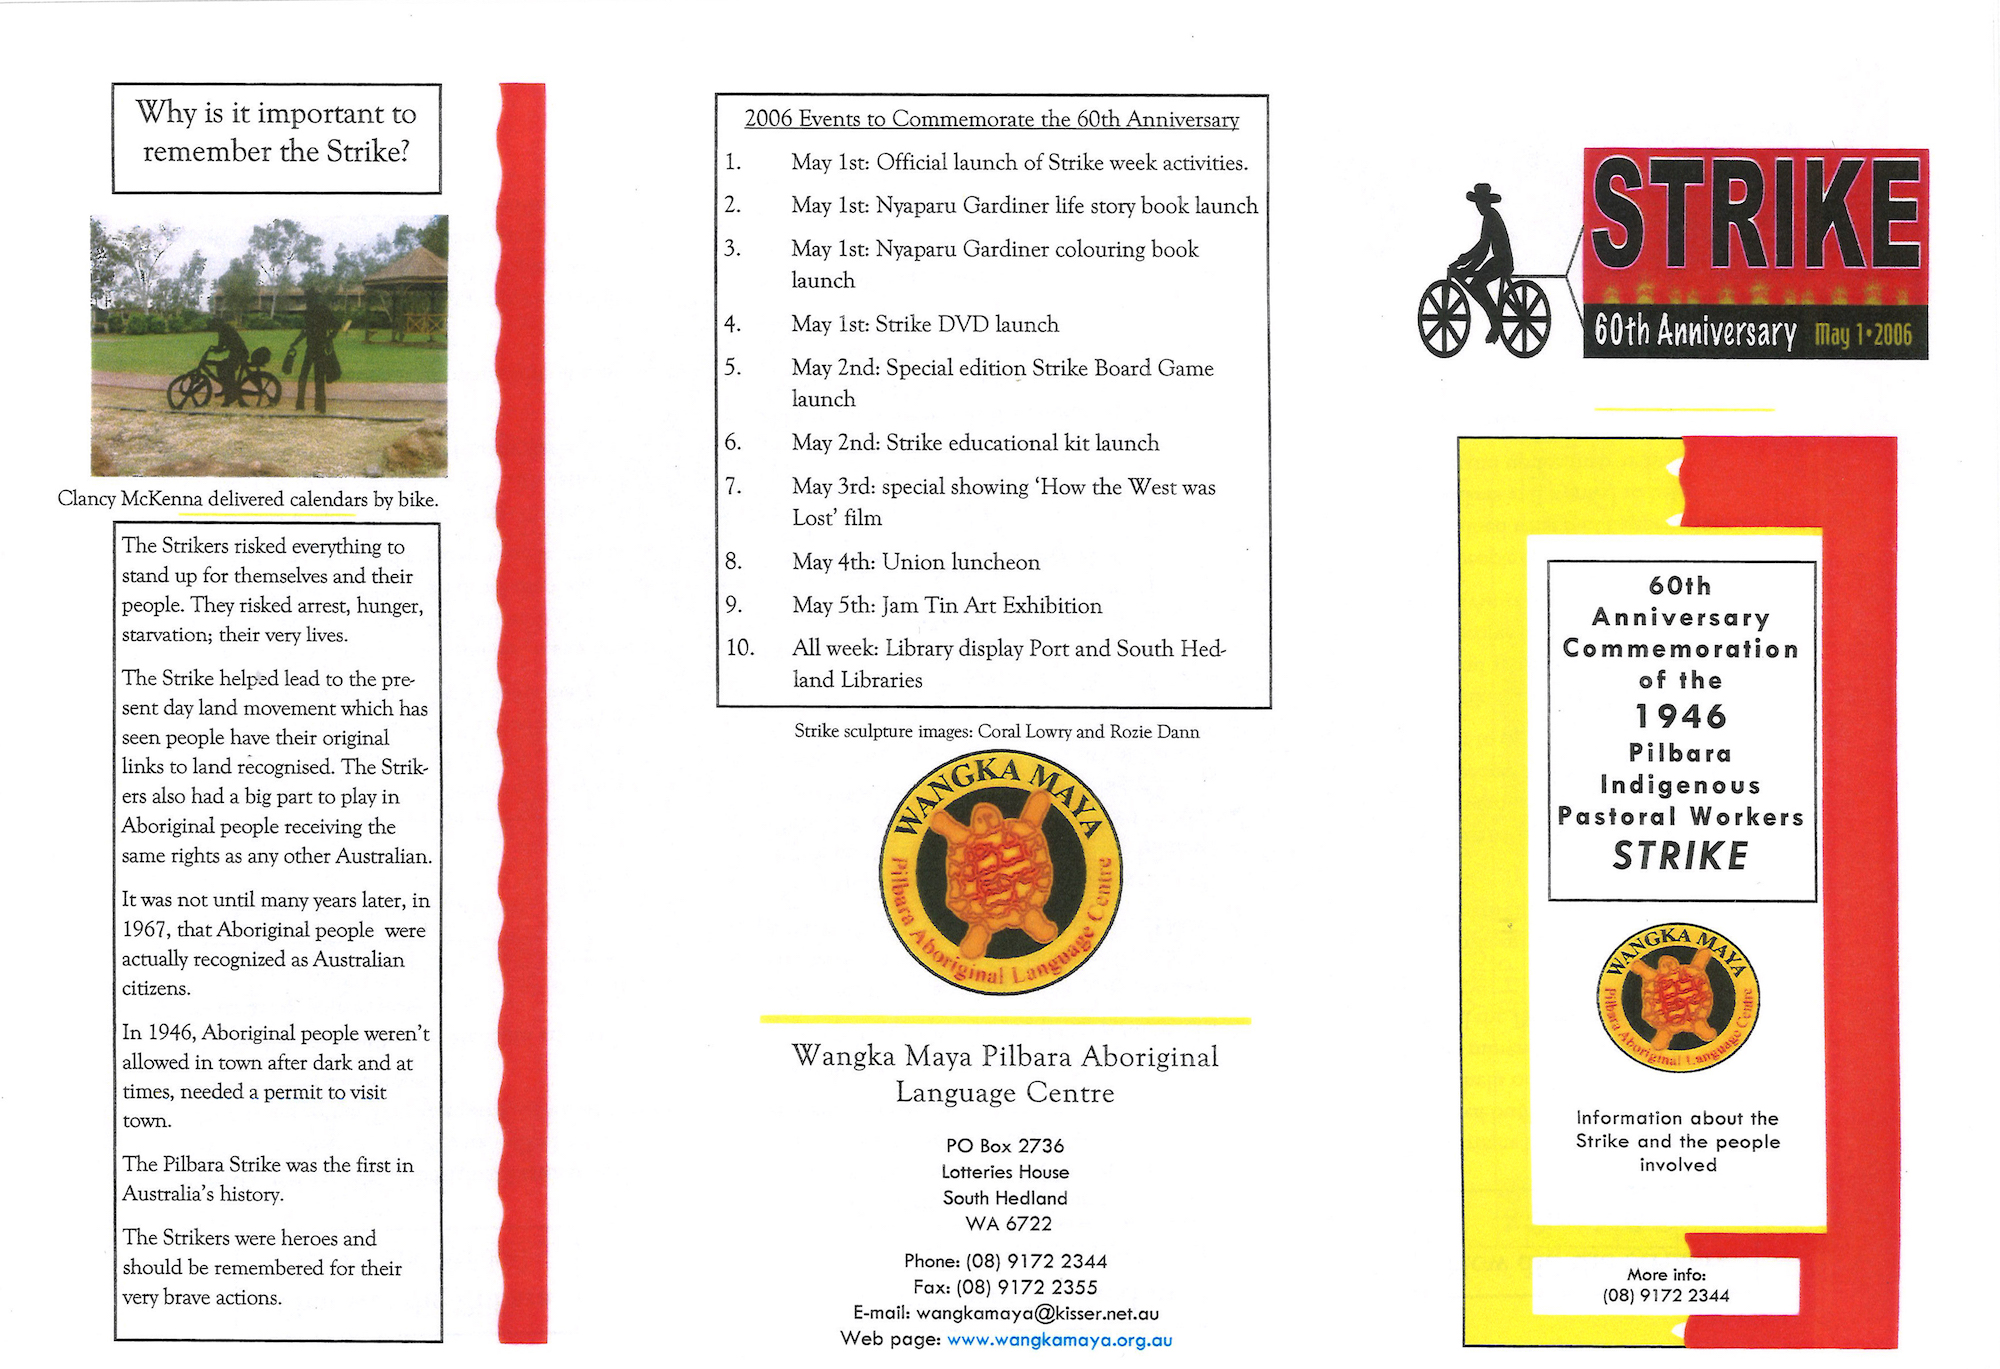 Wangka Maya Pilbara Aboriginal Language Centre, brochure for the 60th anniversary of the strike